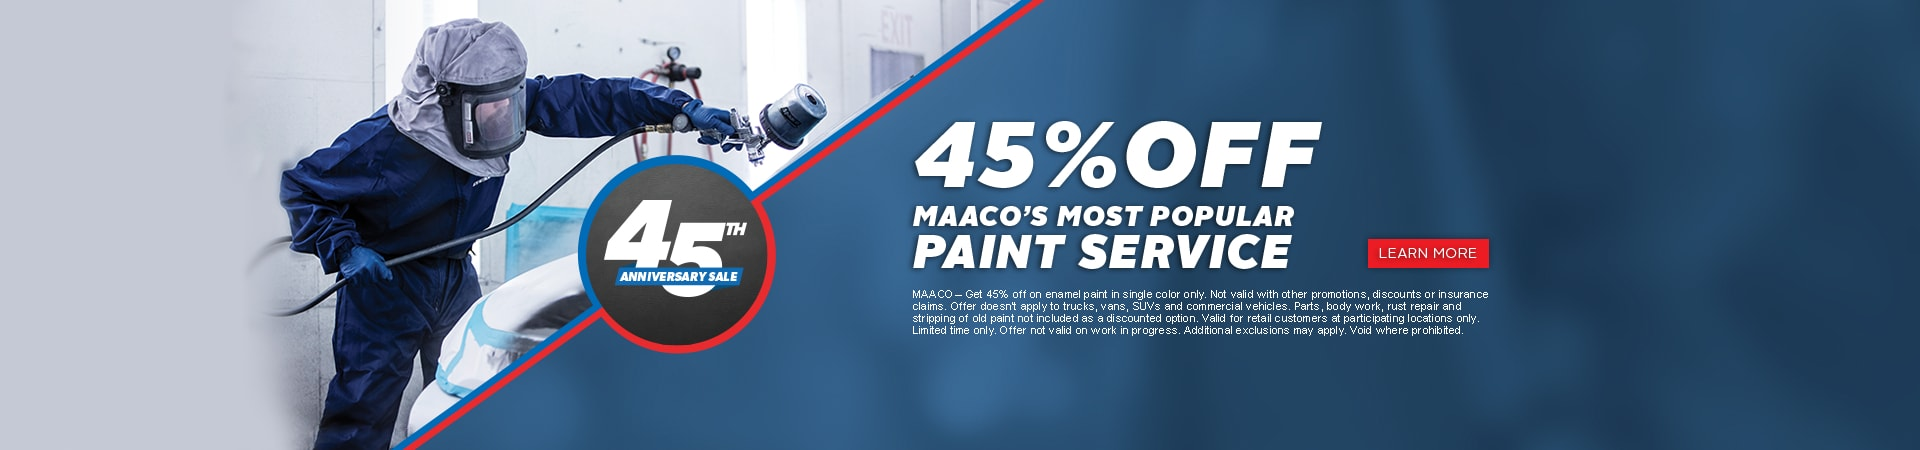 Maaco: 45th Anniversary - 45% off paint service